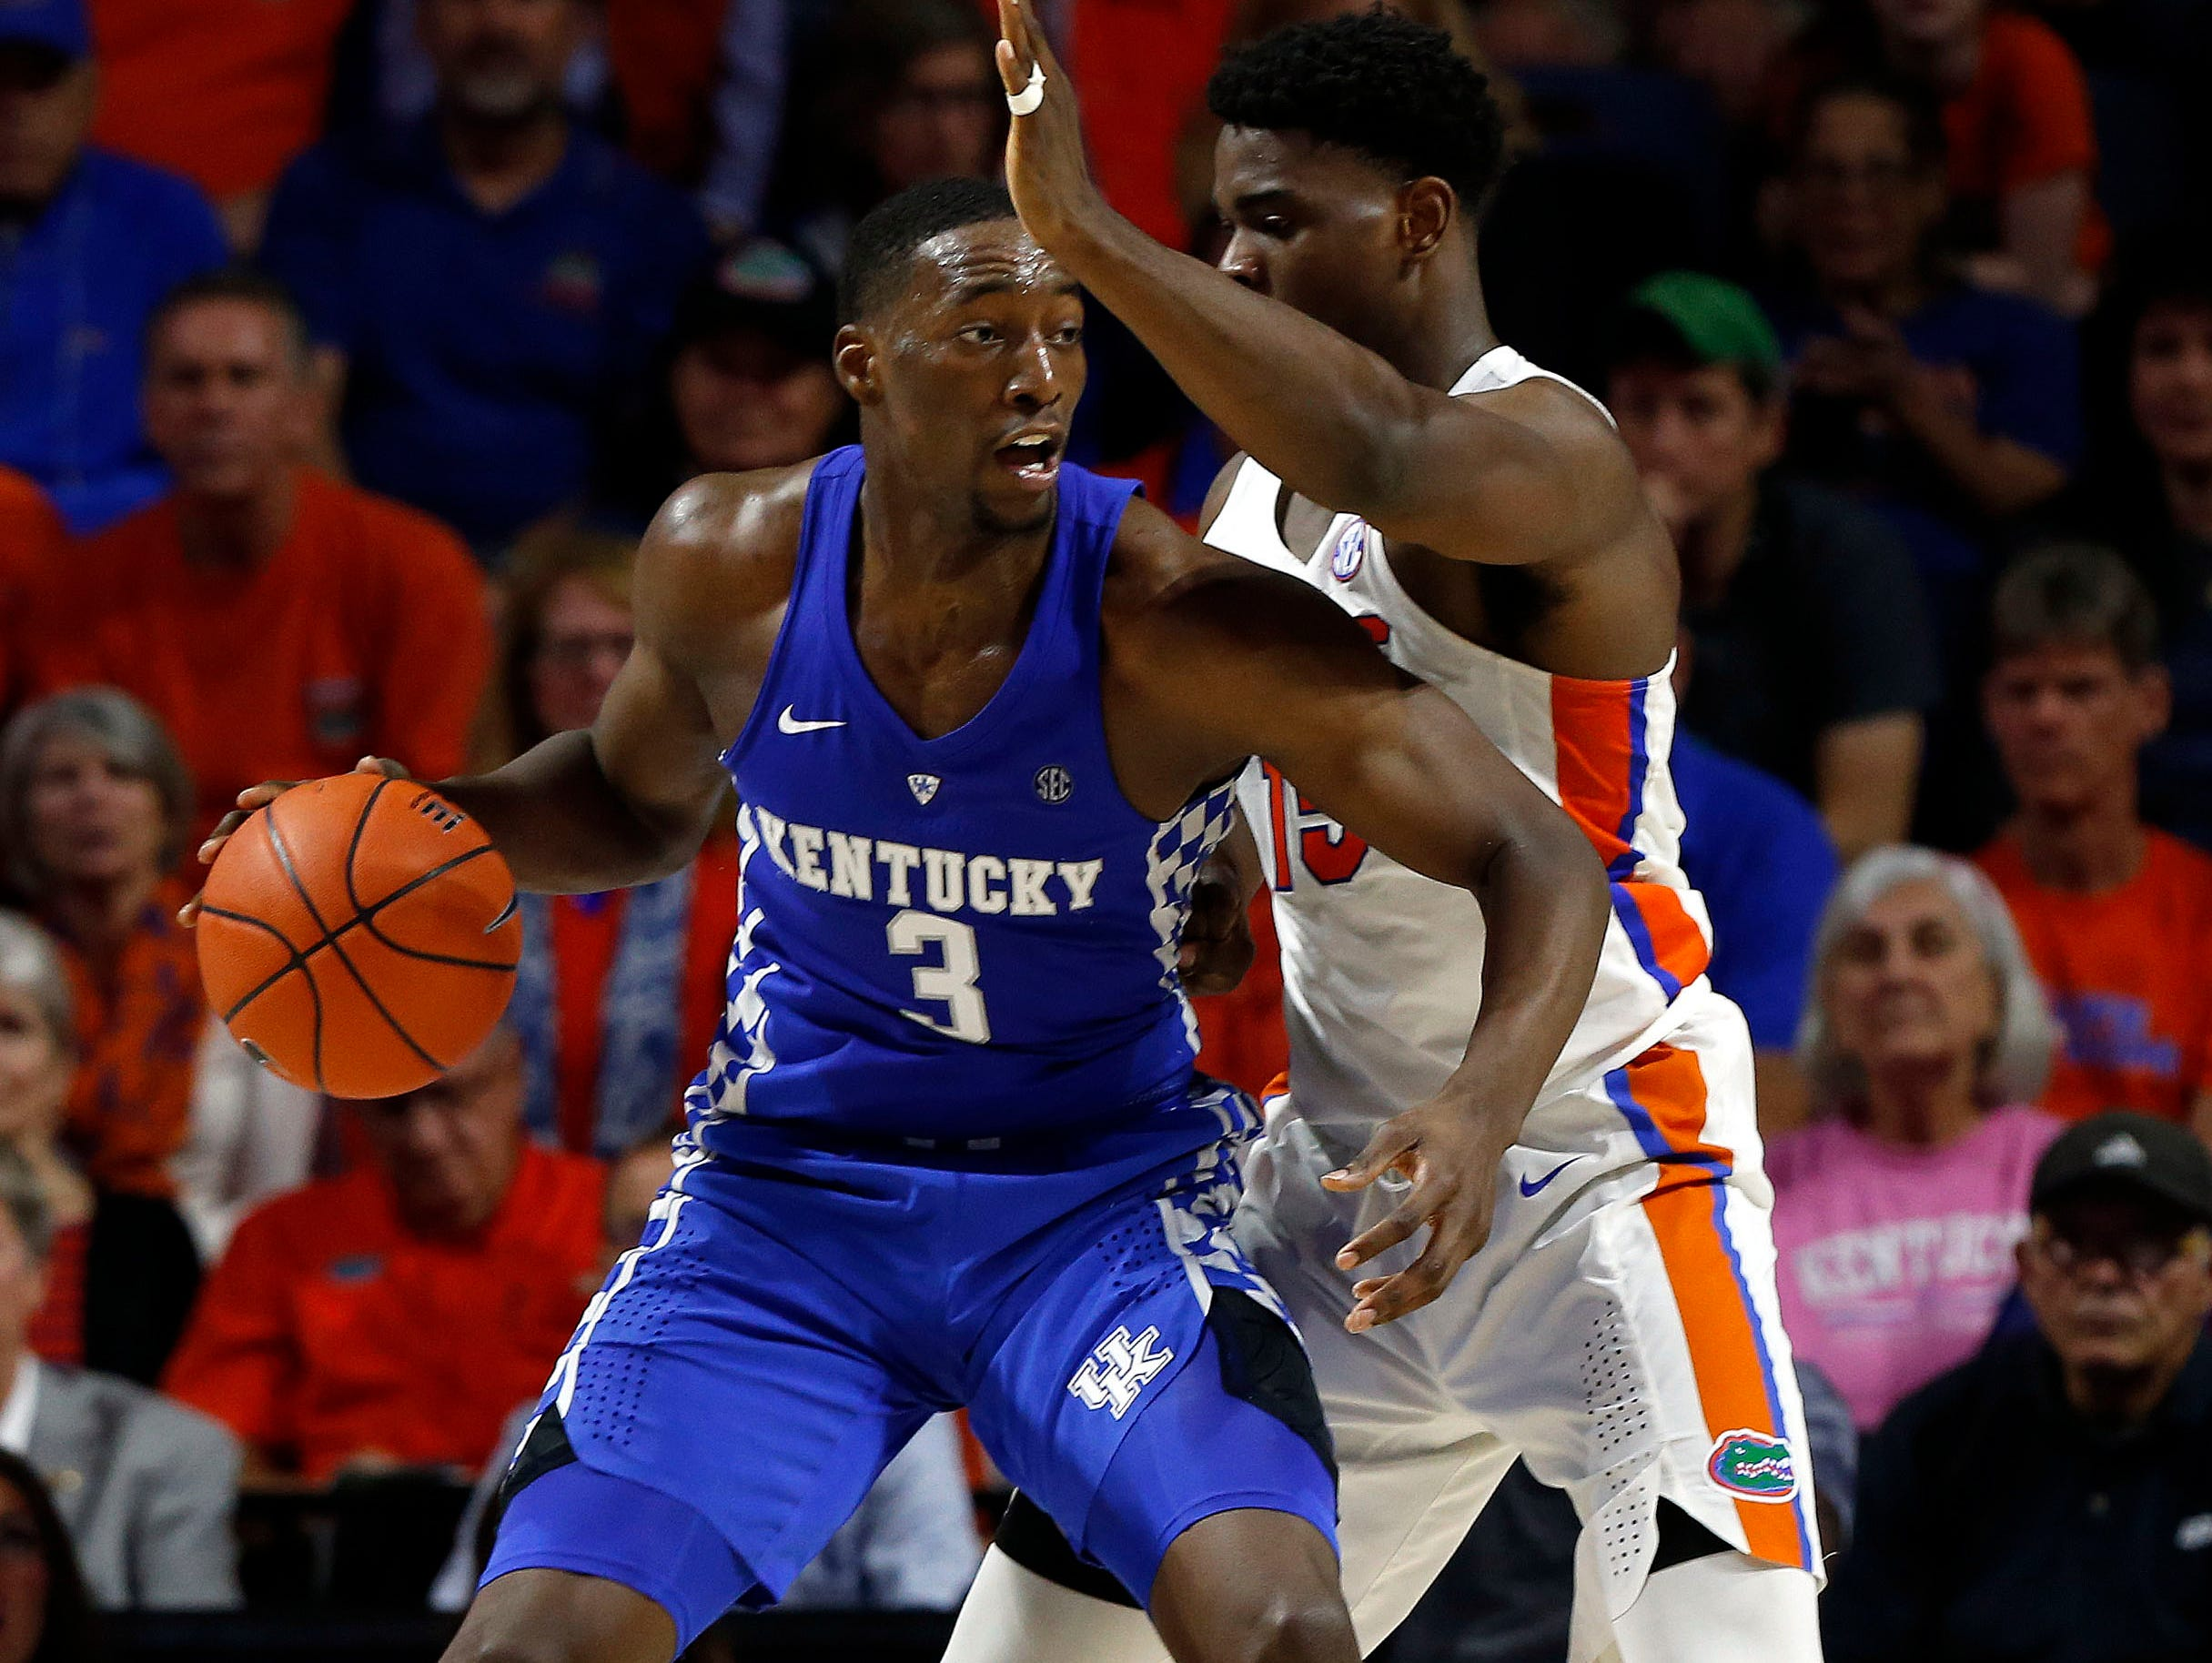 Kentucky Basketball What The Florida Win Means To The: Who'll Win The SEC: Wildcats Or Gators?